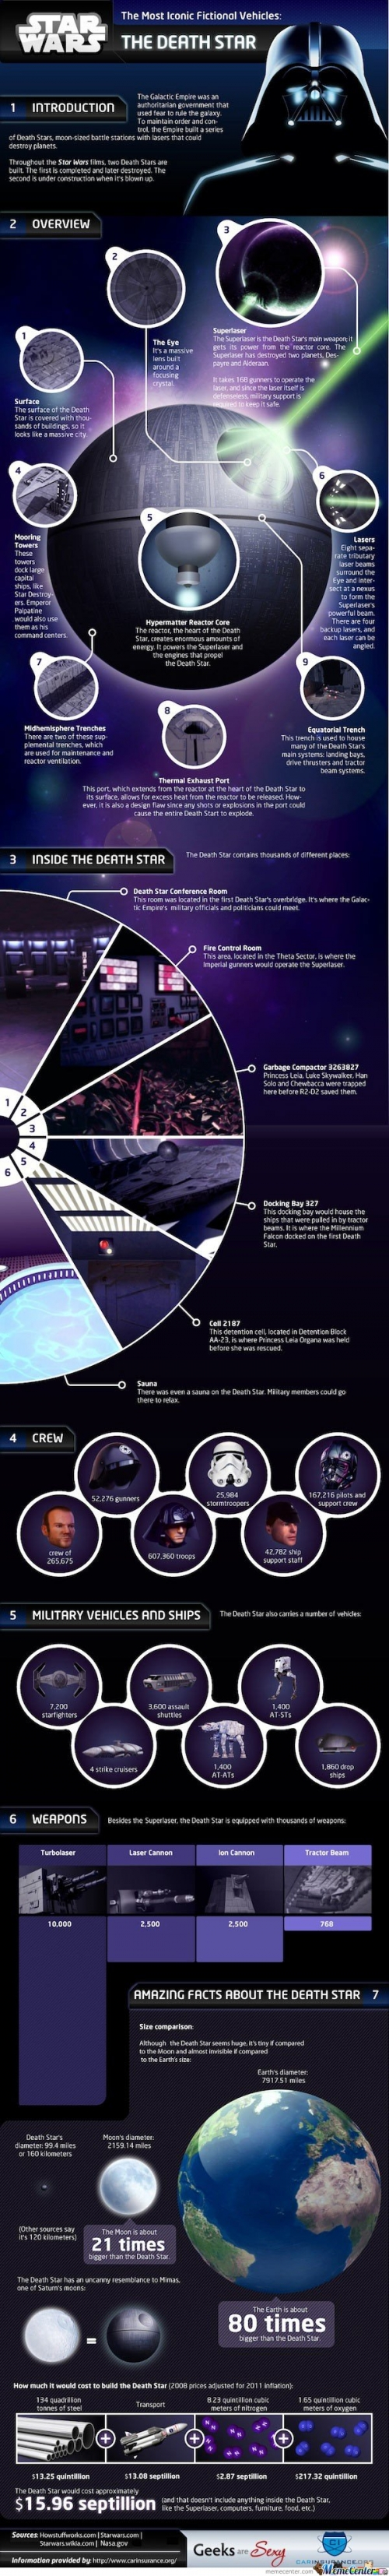 Star Wars , The Death Star Facts